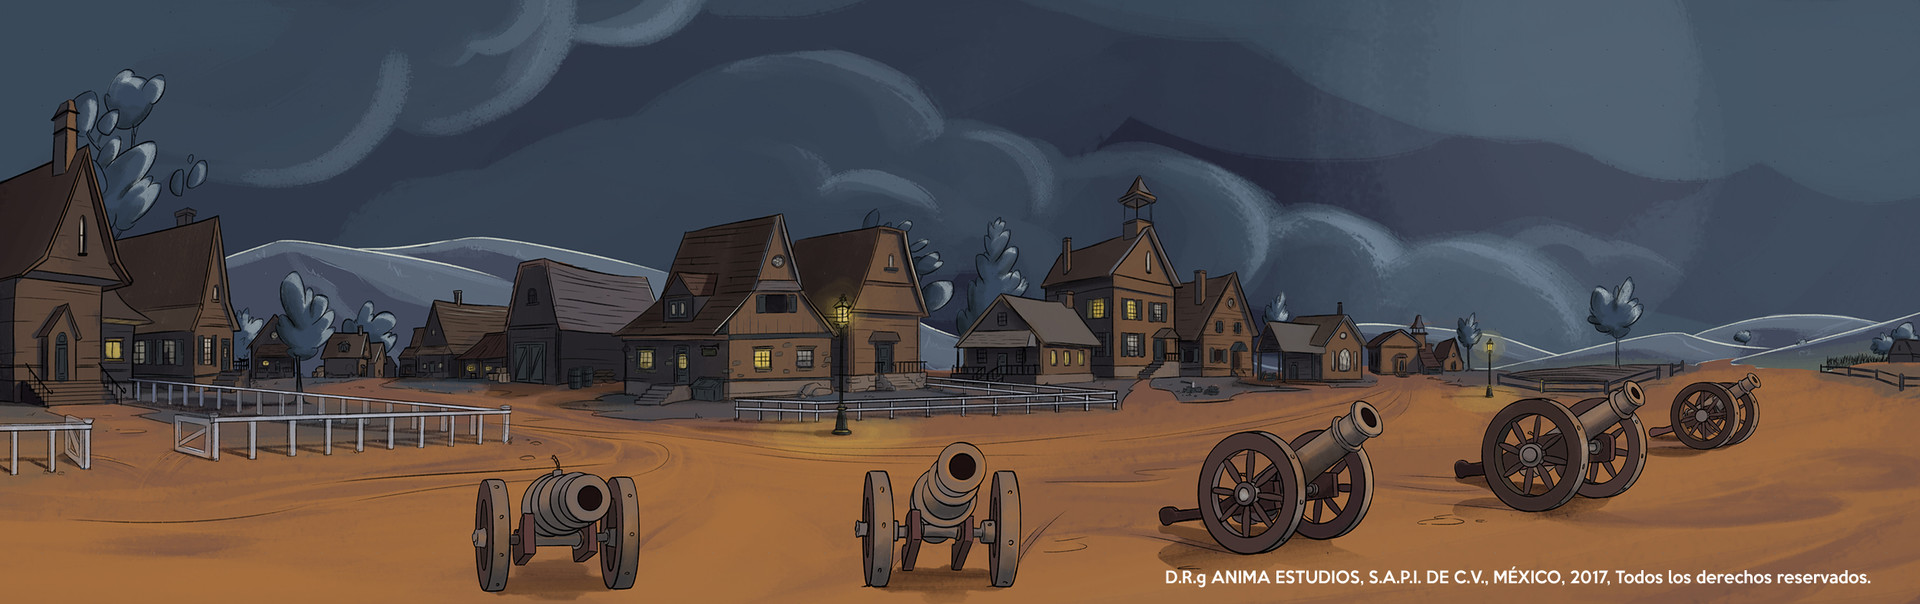 The town outskirts, with night palette.